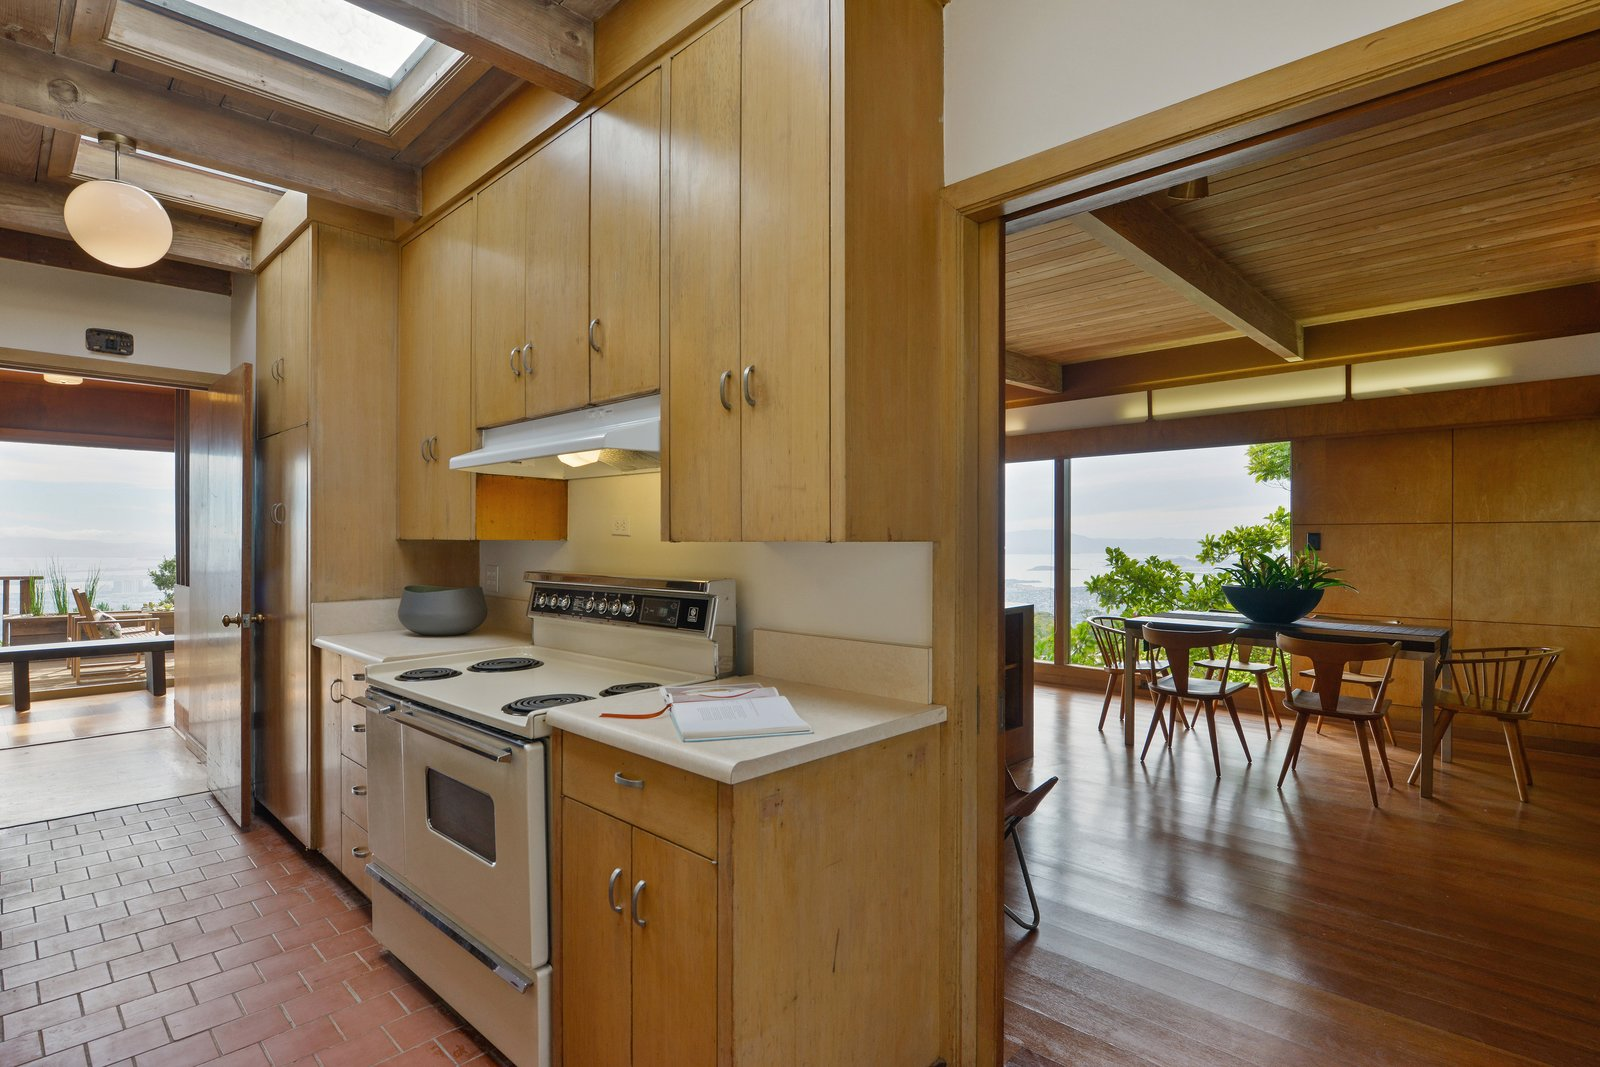 Kitchen, Laminate, Brick, Range, Range Hood, Pendant, Medium Hardwood, and Wood The kitchen is set off of the dining area.  Best Kitchen Medium Hardwood Laminate Photos from A Berkeley Midcentury With Jaw-Dropping Views Asks $945K